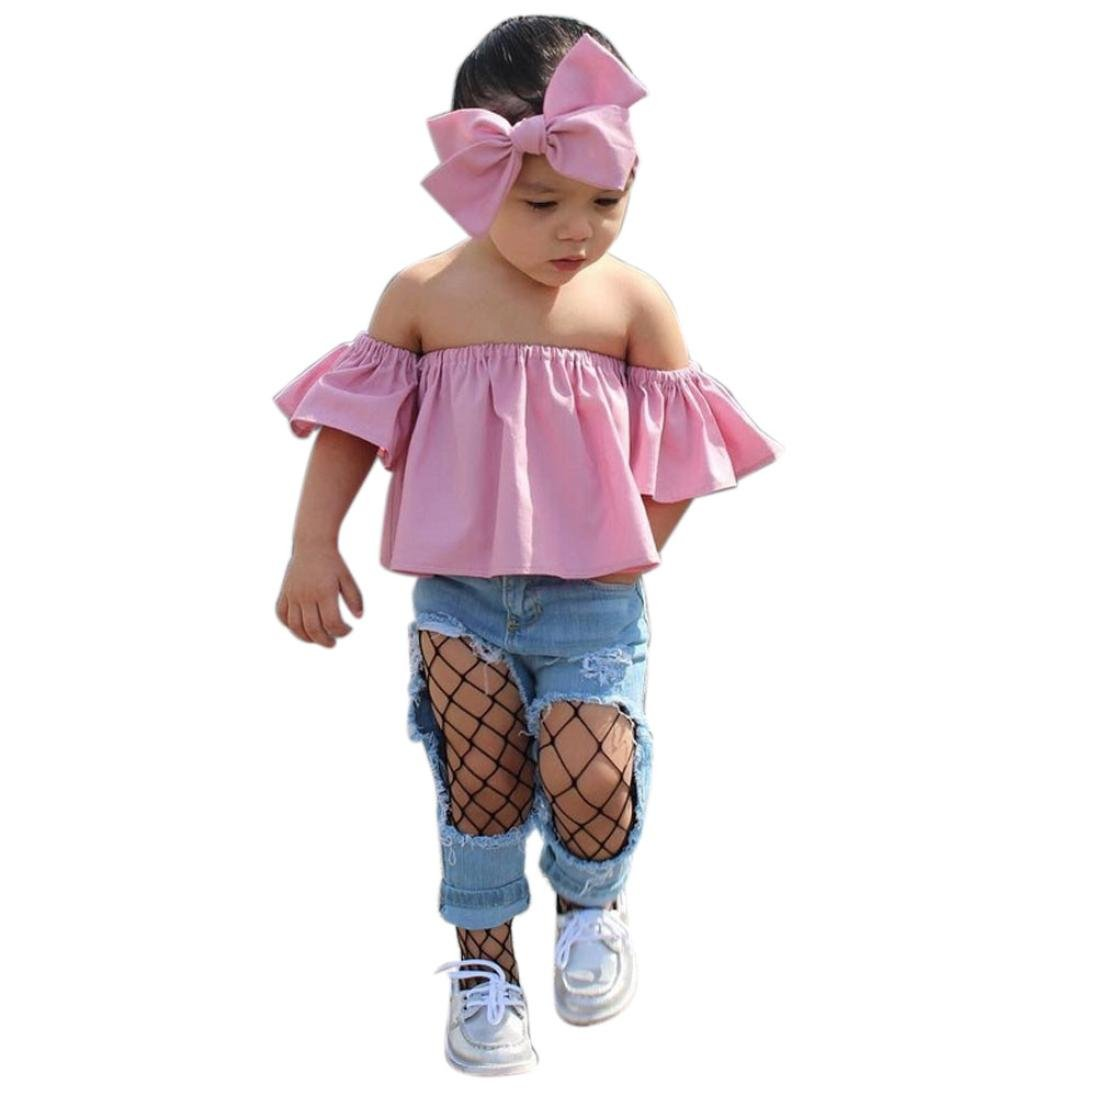 b9f9684ef Amazon.com  Goodlock Toddler Kids Fashion Clothes Set Baby Girl Off ...